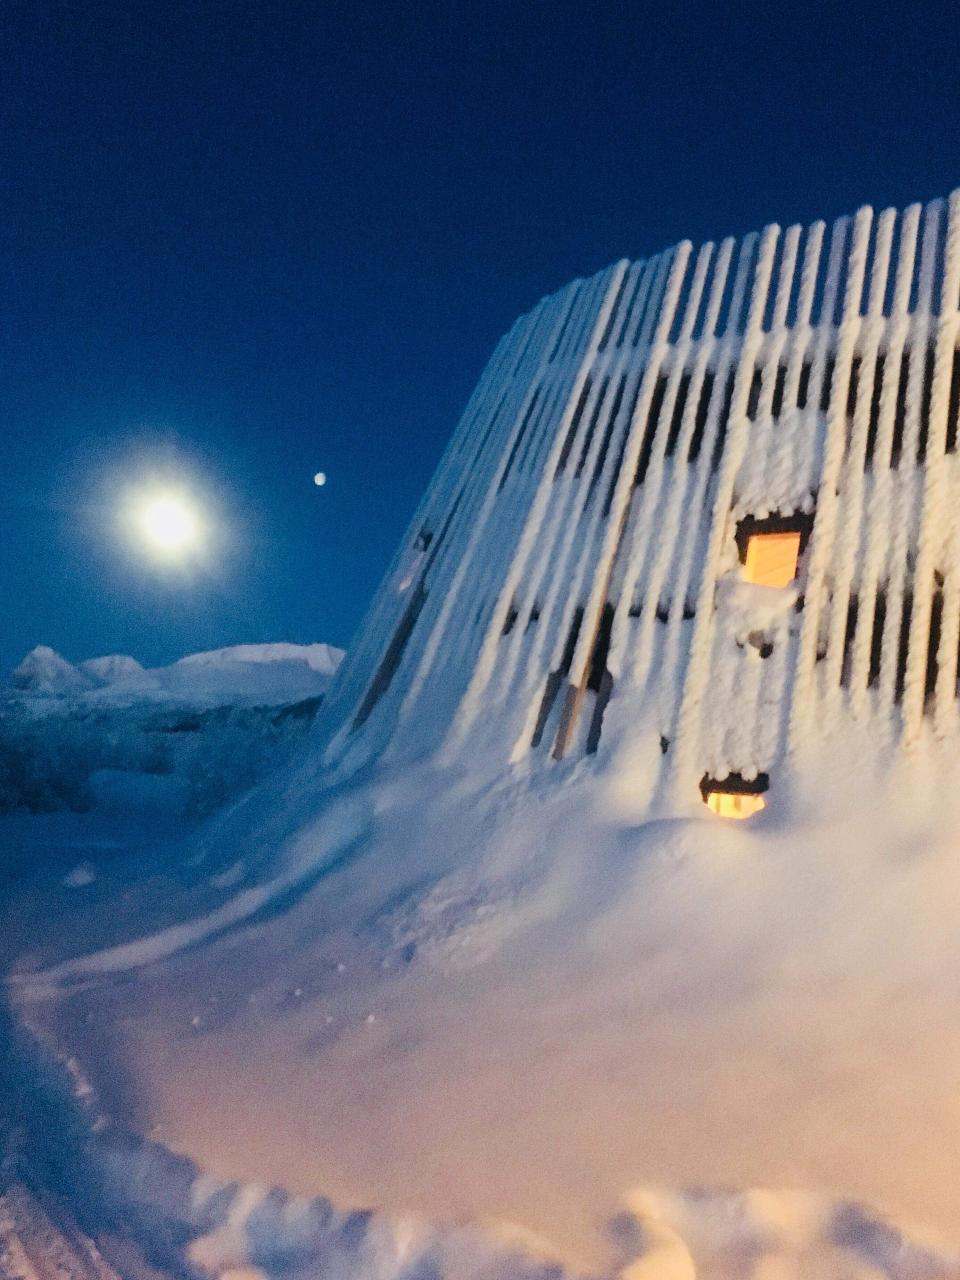 Superior overnight tour with snowmobile to the surroundings of swedens highest mountains